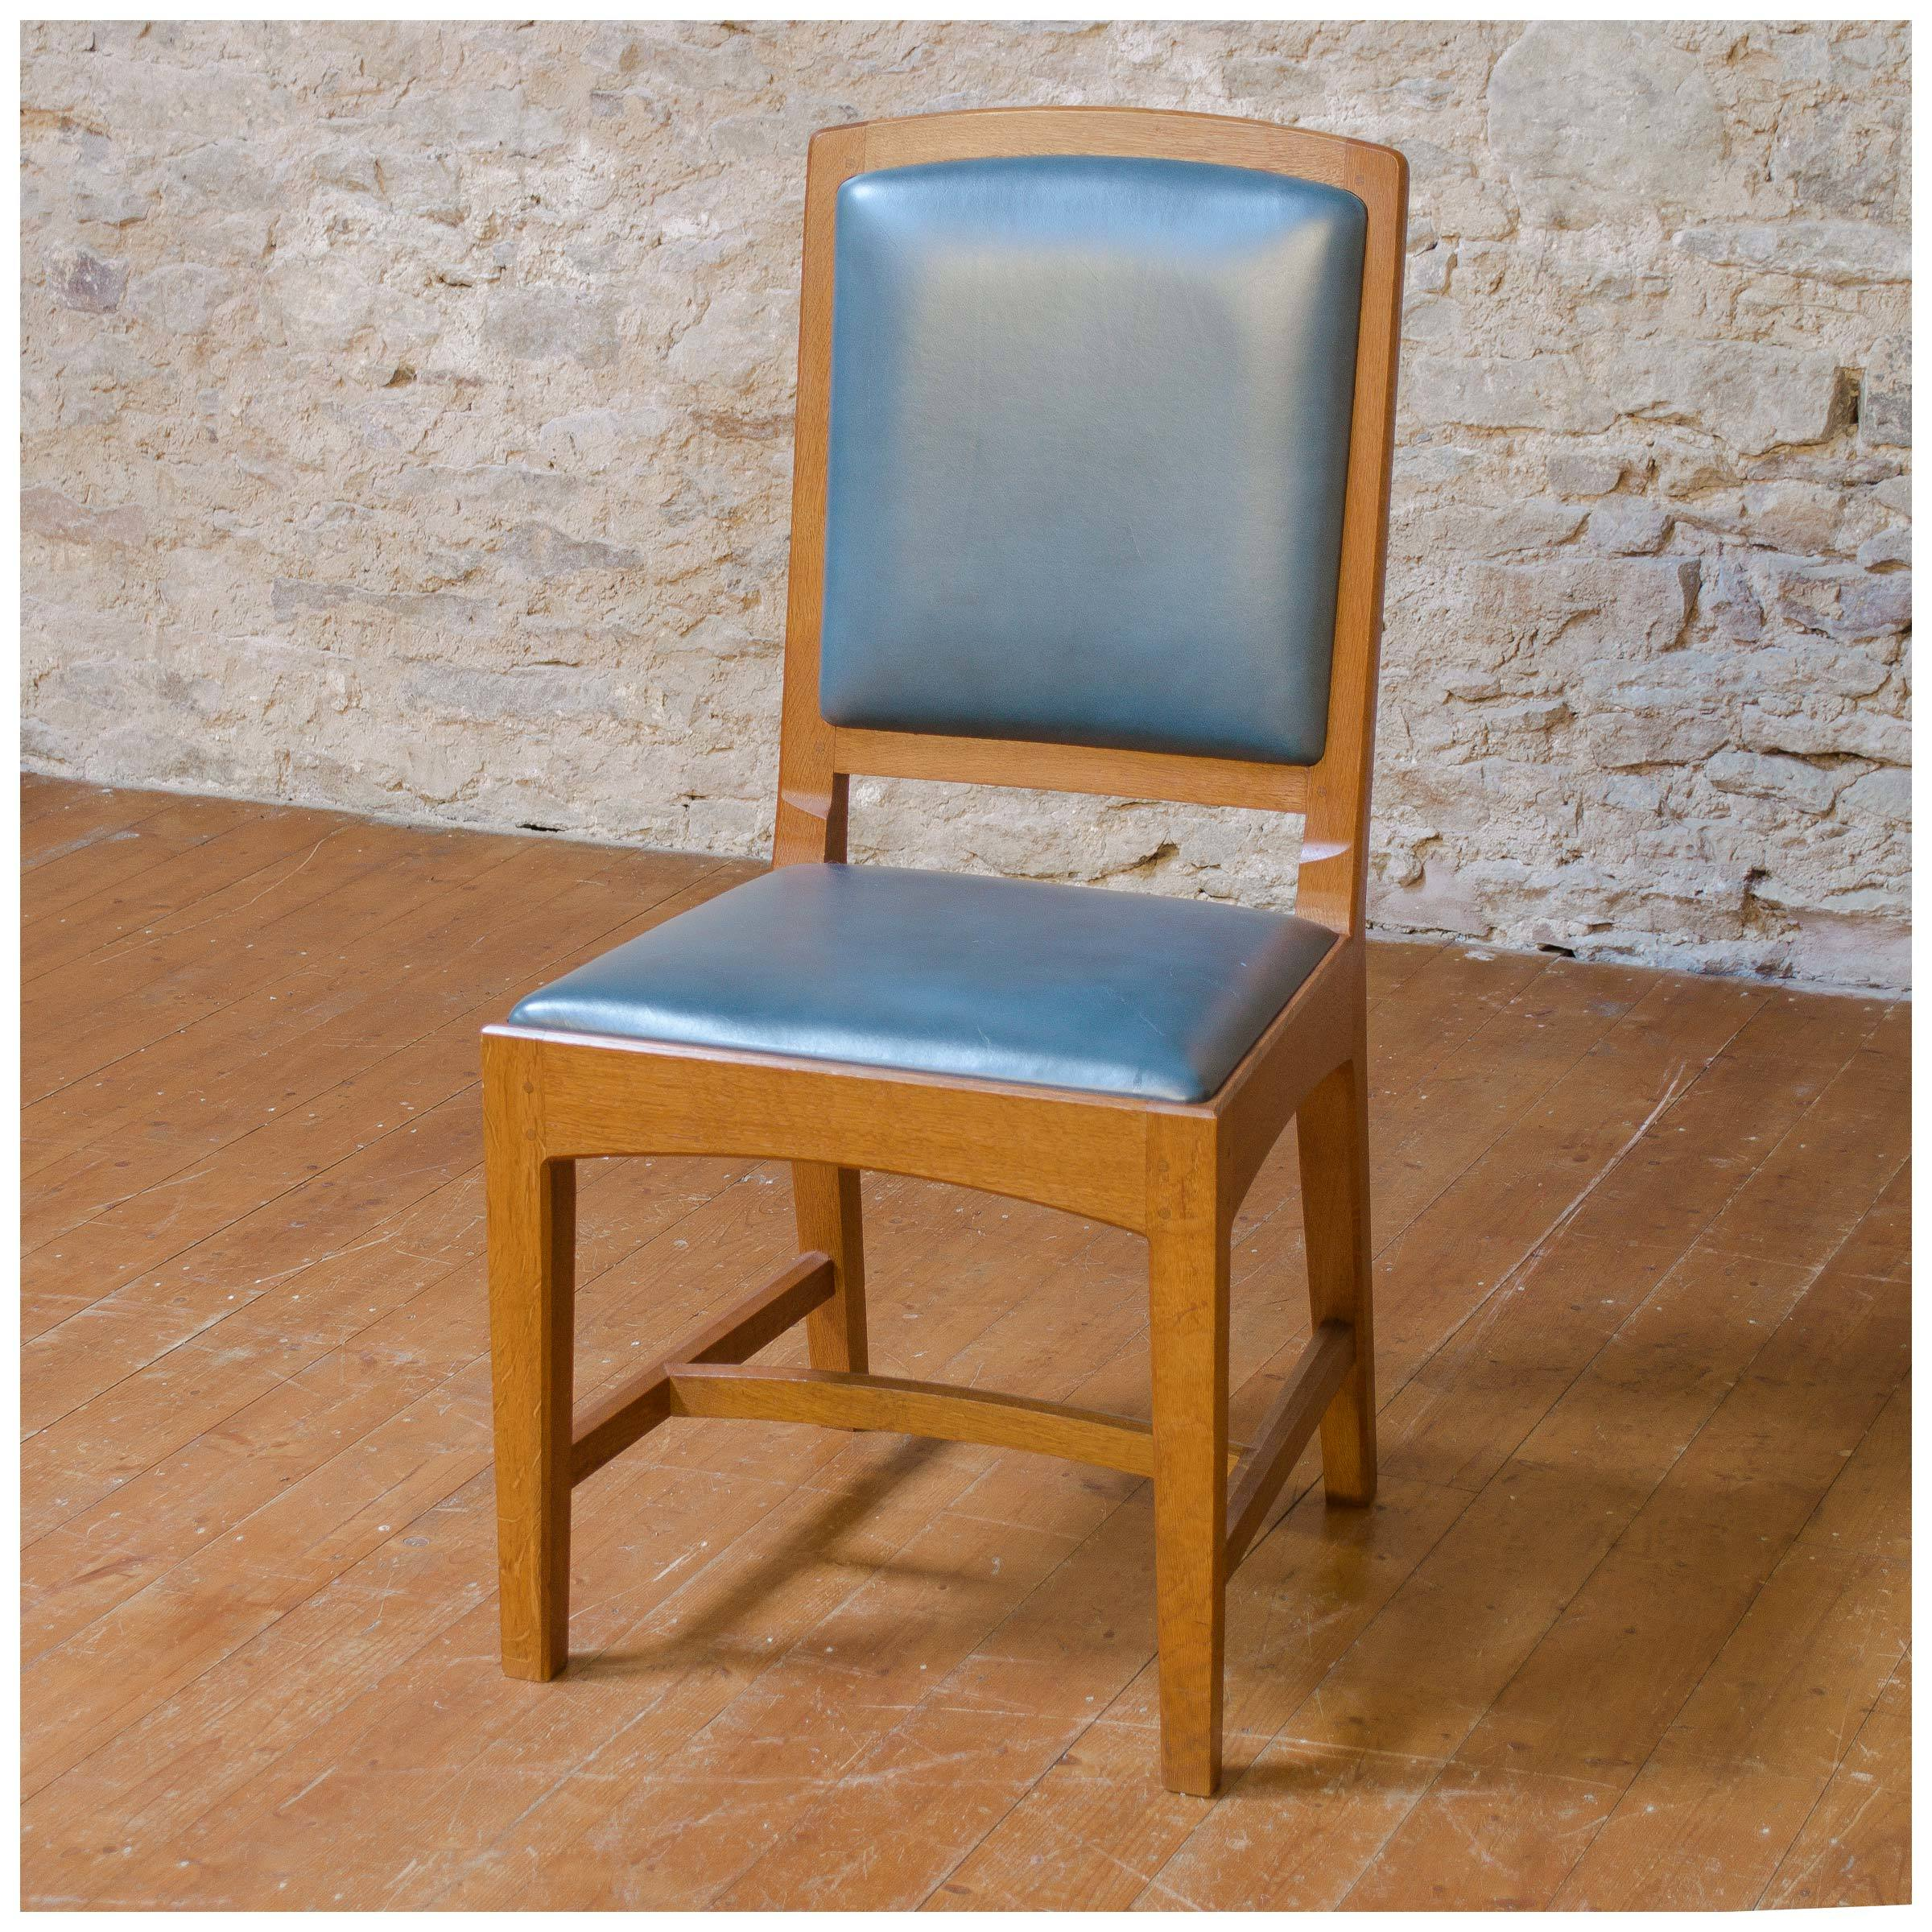 4-antique-arts-crafts-oak-and-leather-oxford-chairs-by-peter-hall-of-staveley-b0020017l.jpg